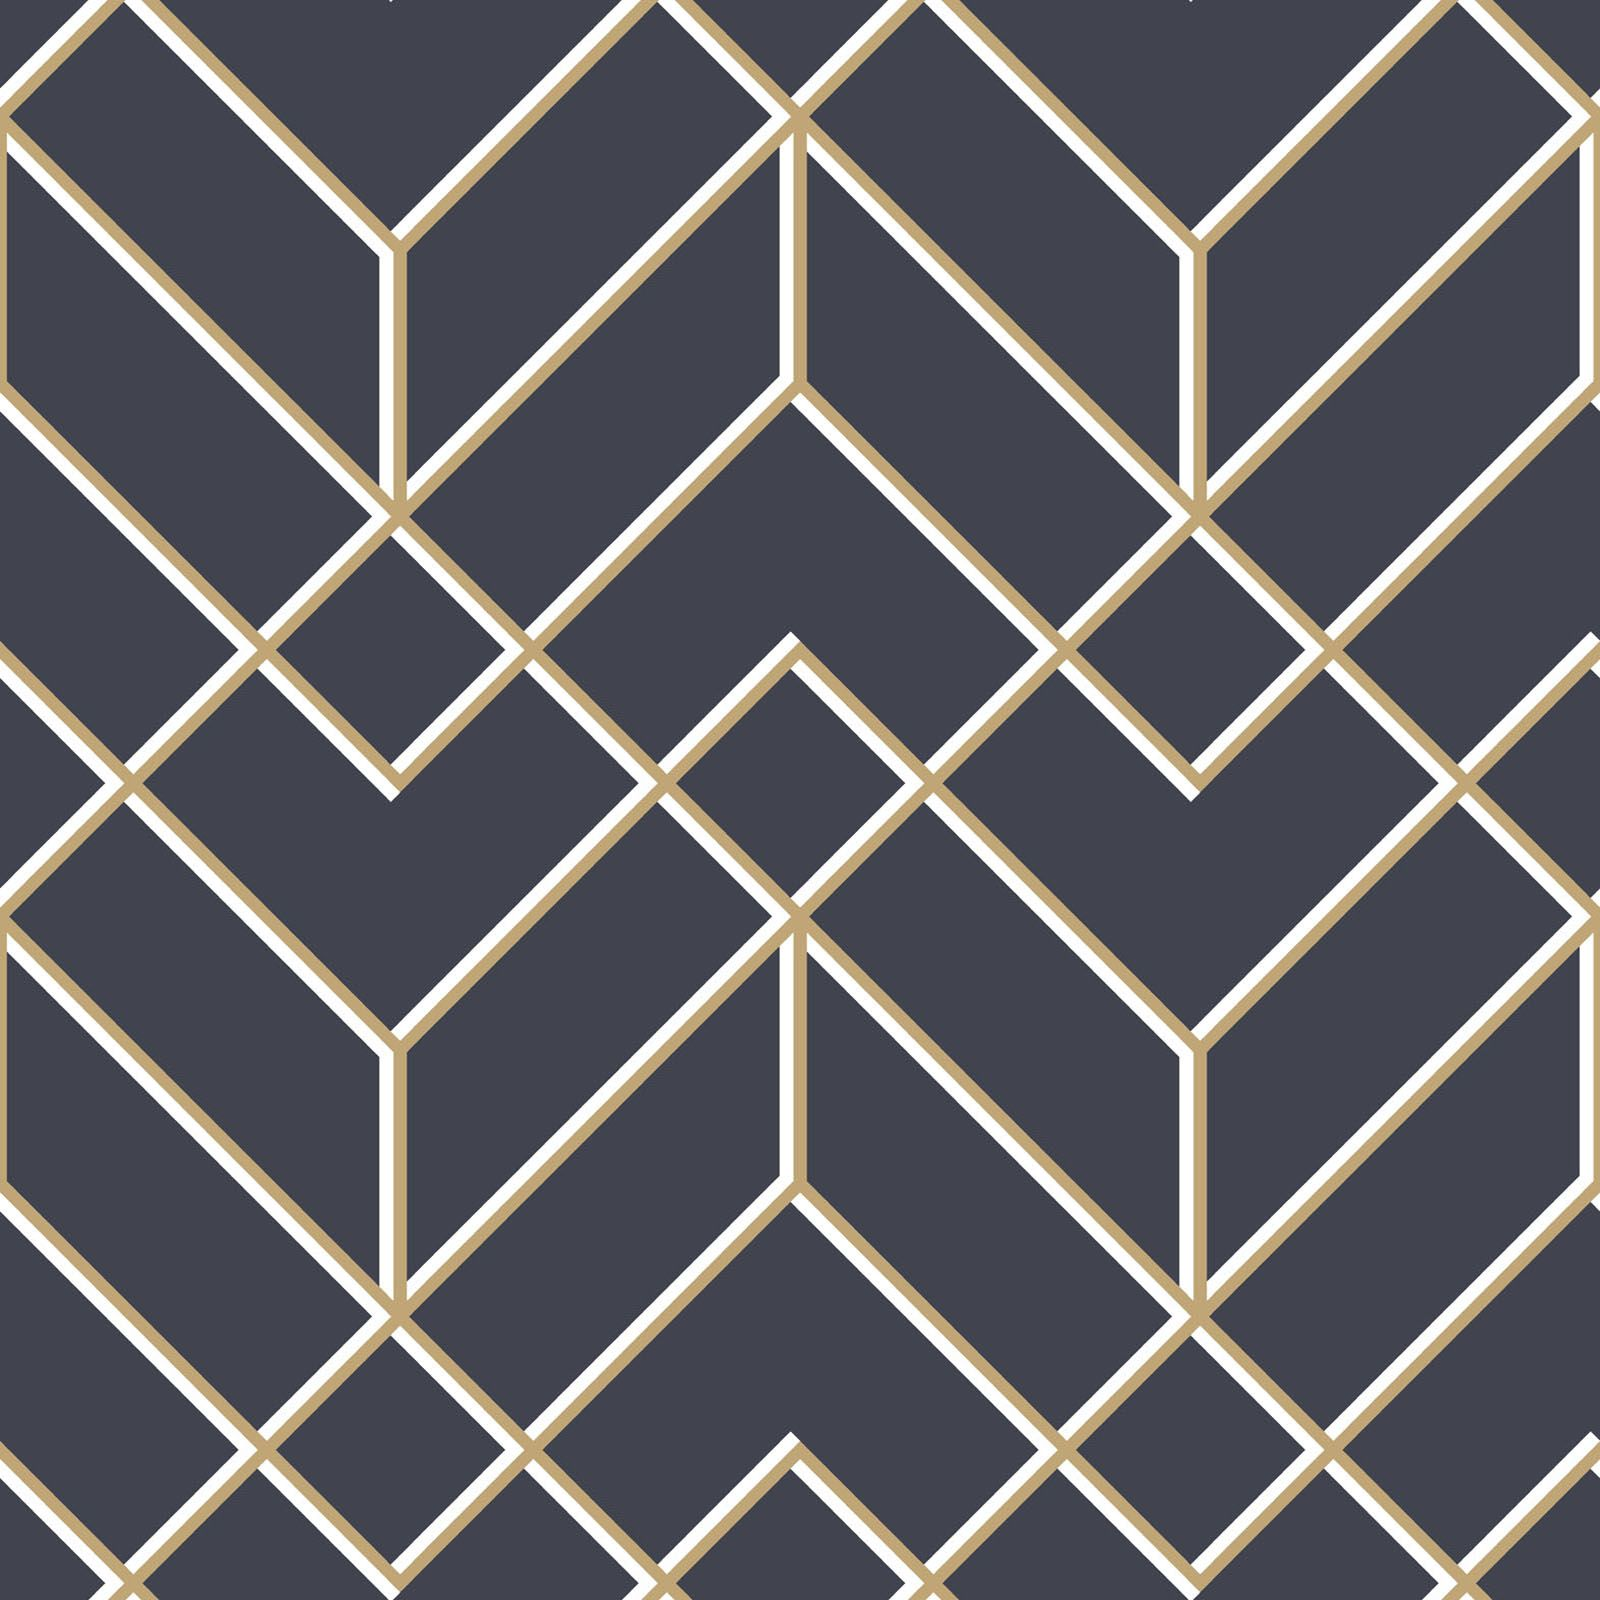 Losanges Filaires Navy/gold Wallpaper Gold geometric